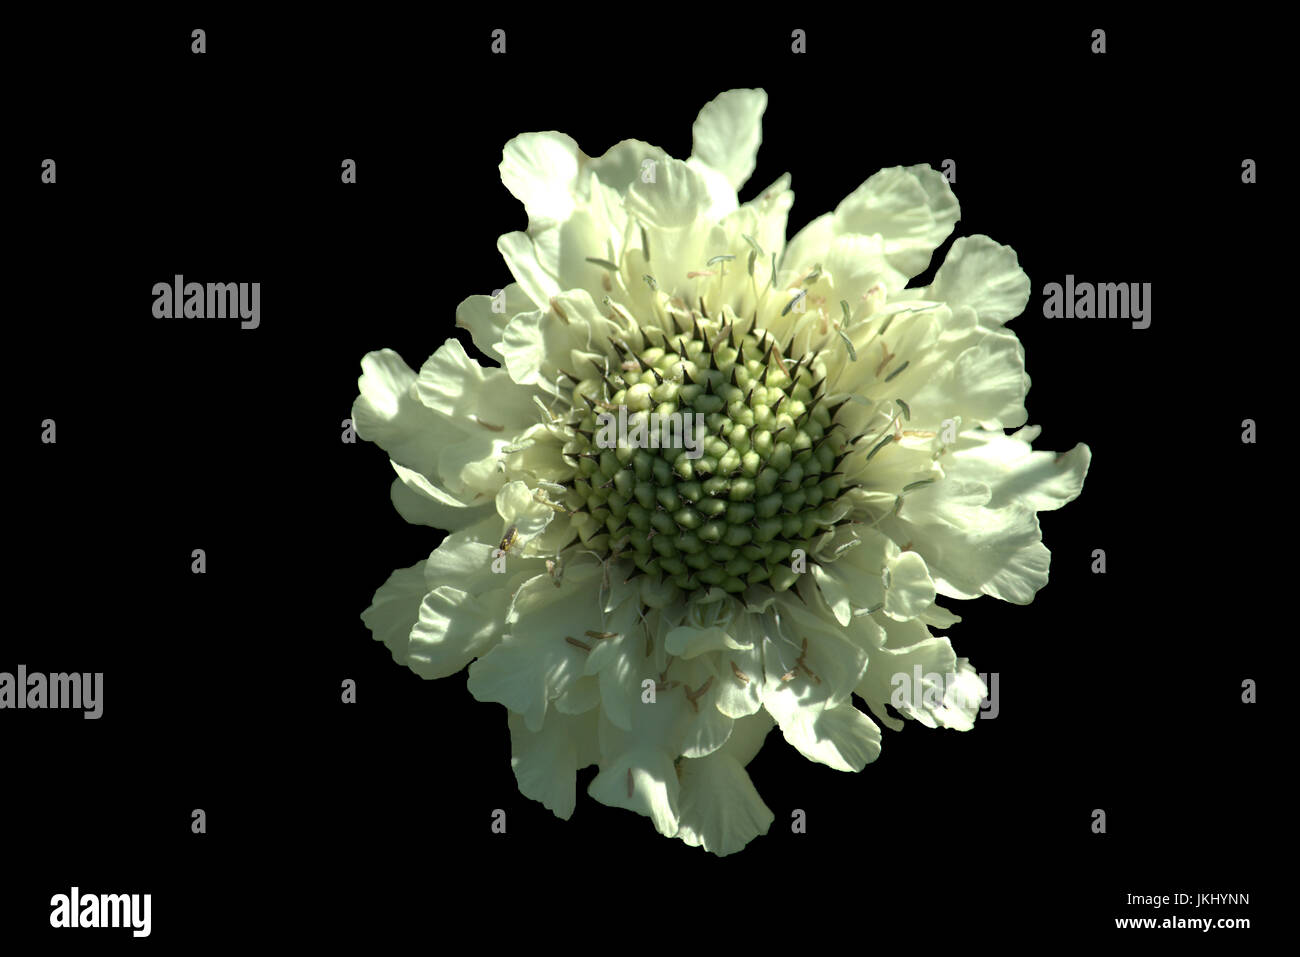 White giant scabious flower isolated on black background - Stock Image